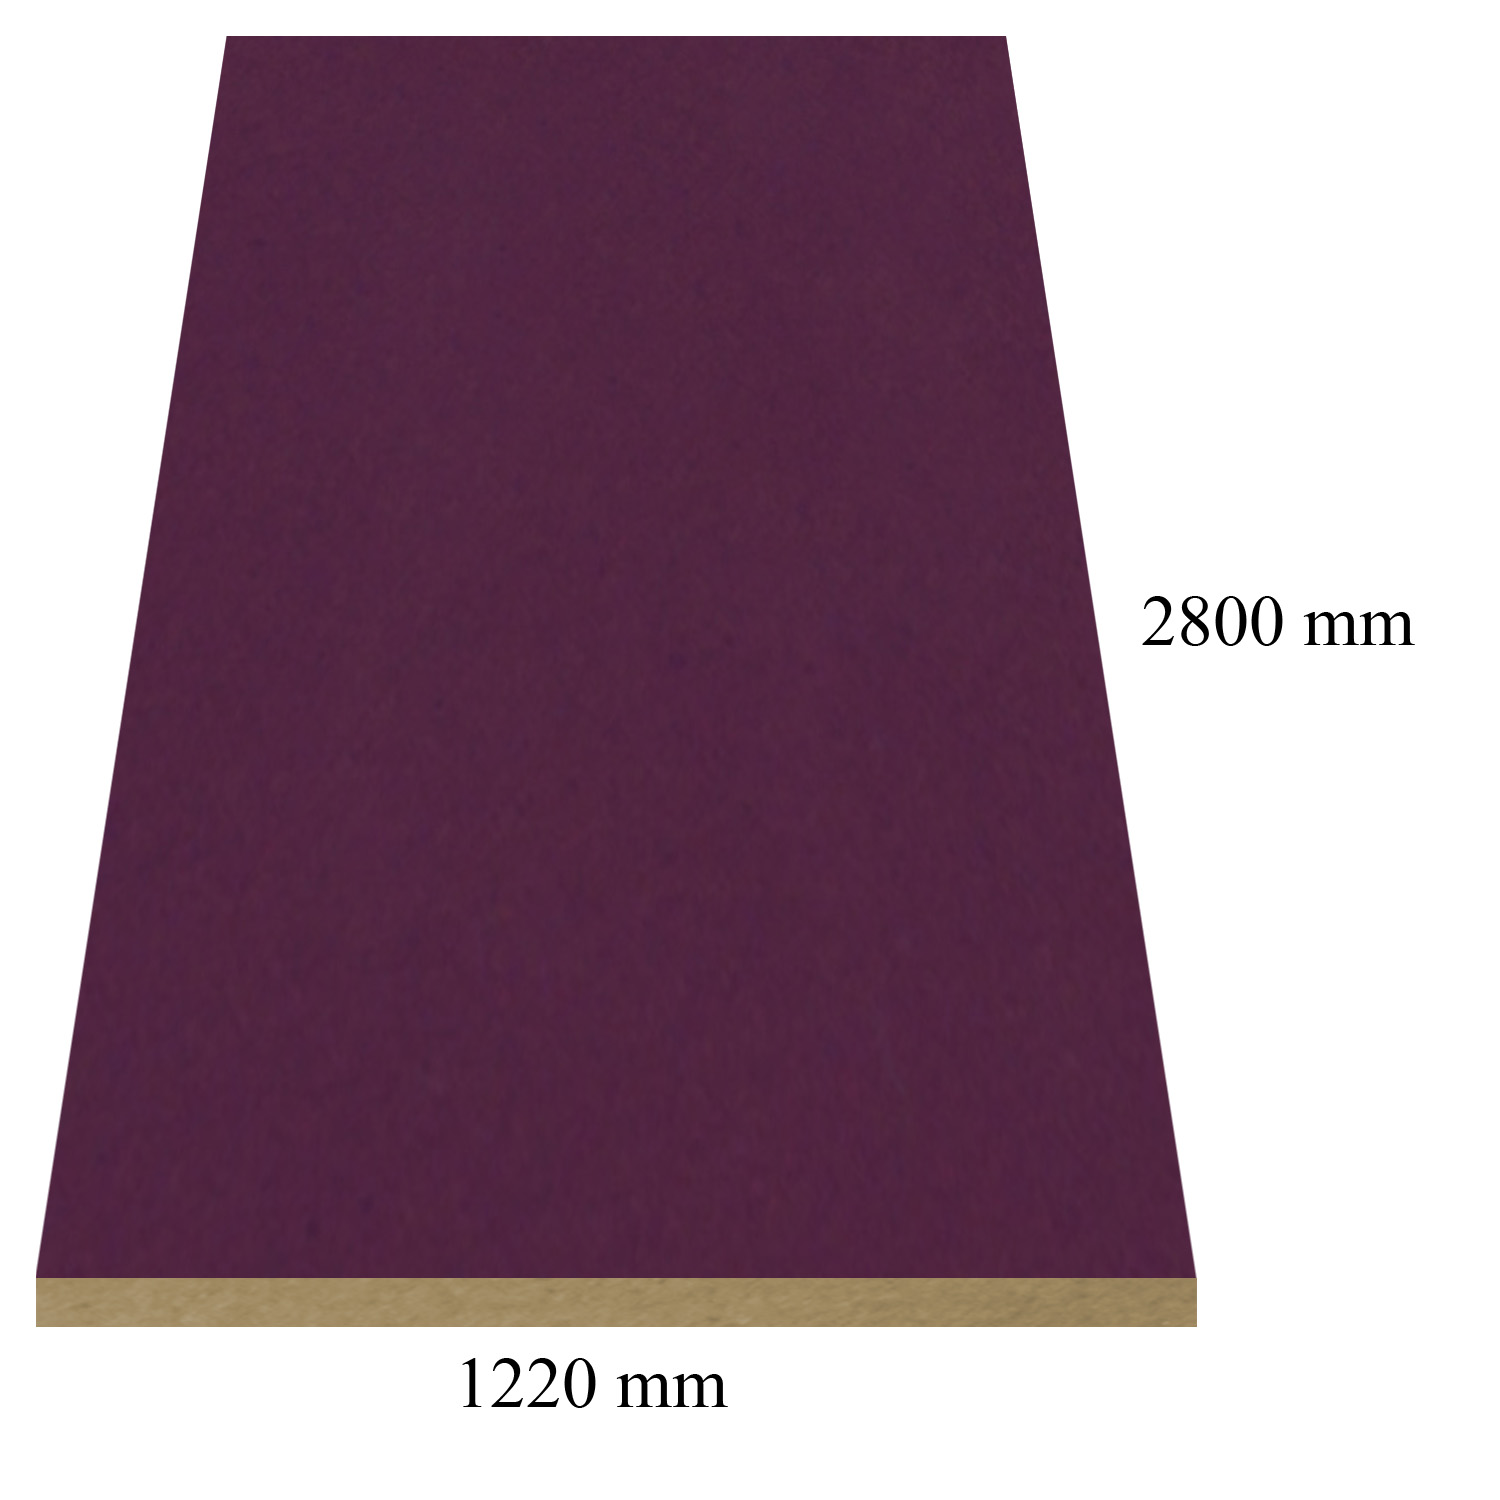 428 Dark Damson high gloss - PVC coated 18 mm MDF